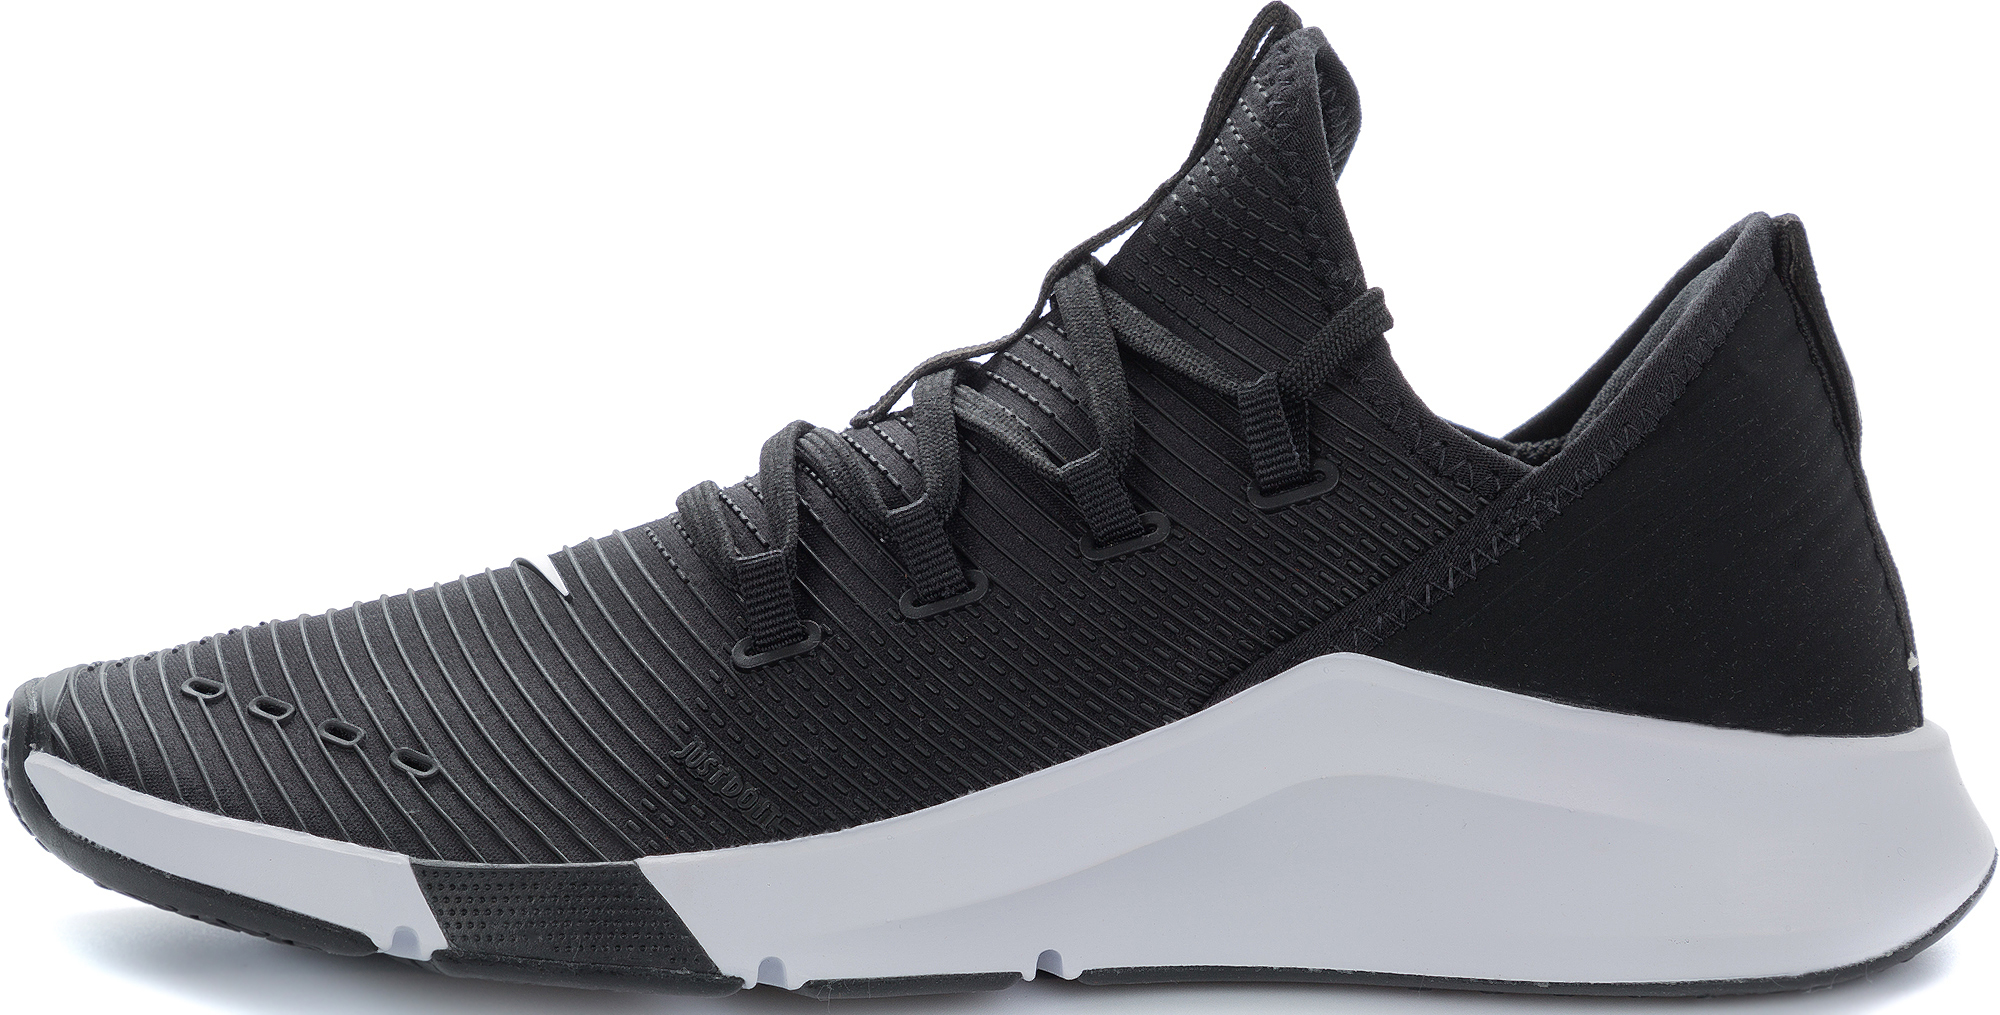 Nike Кроссовки женские Nike Air Zoom Fitness 2, размер 39,5